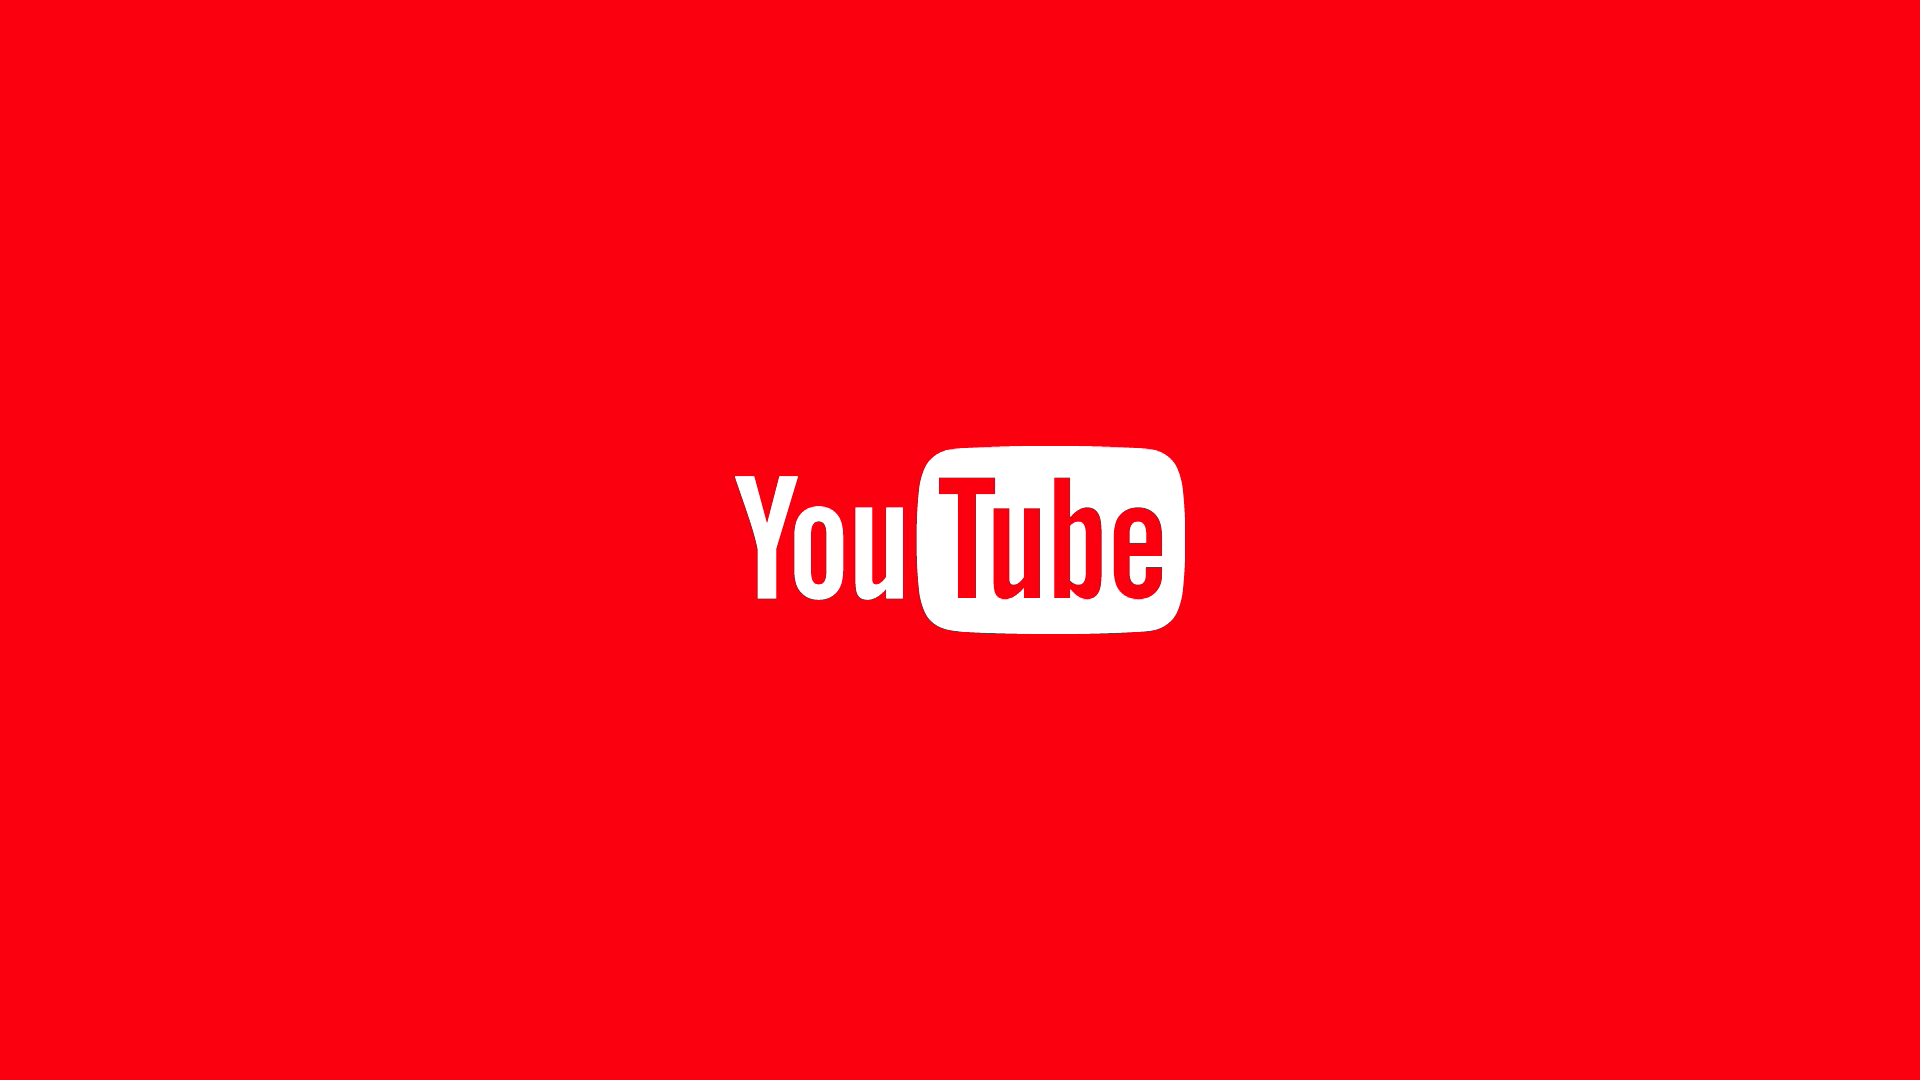 youtube wallpaper